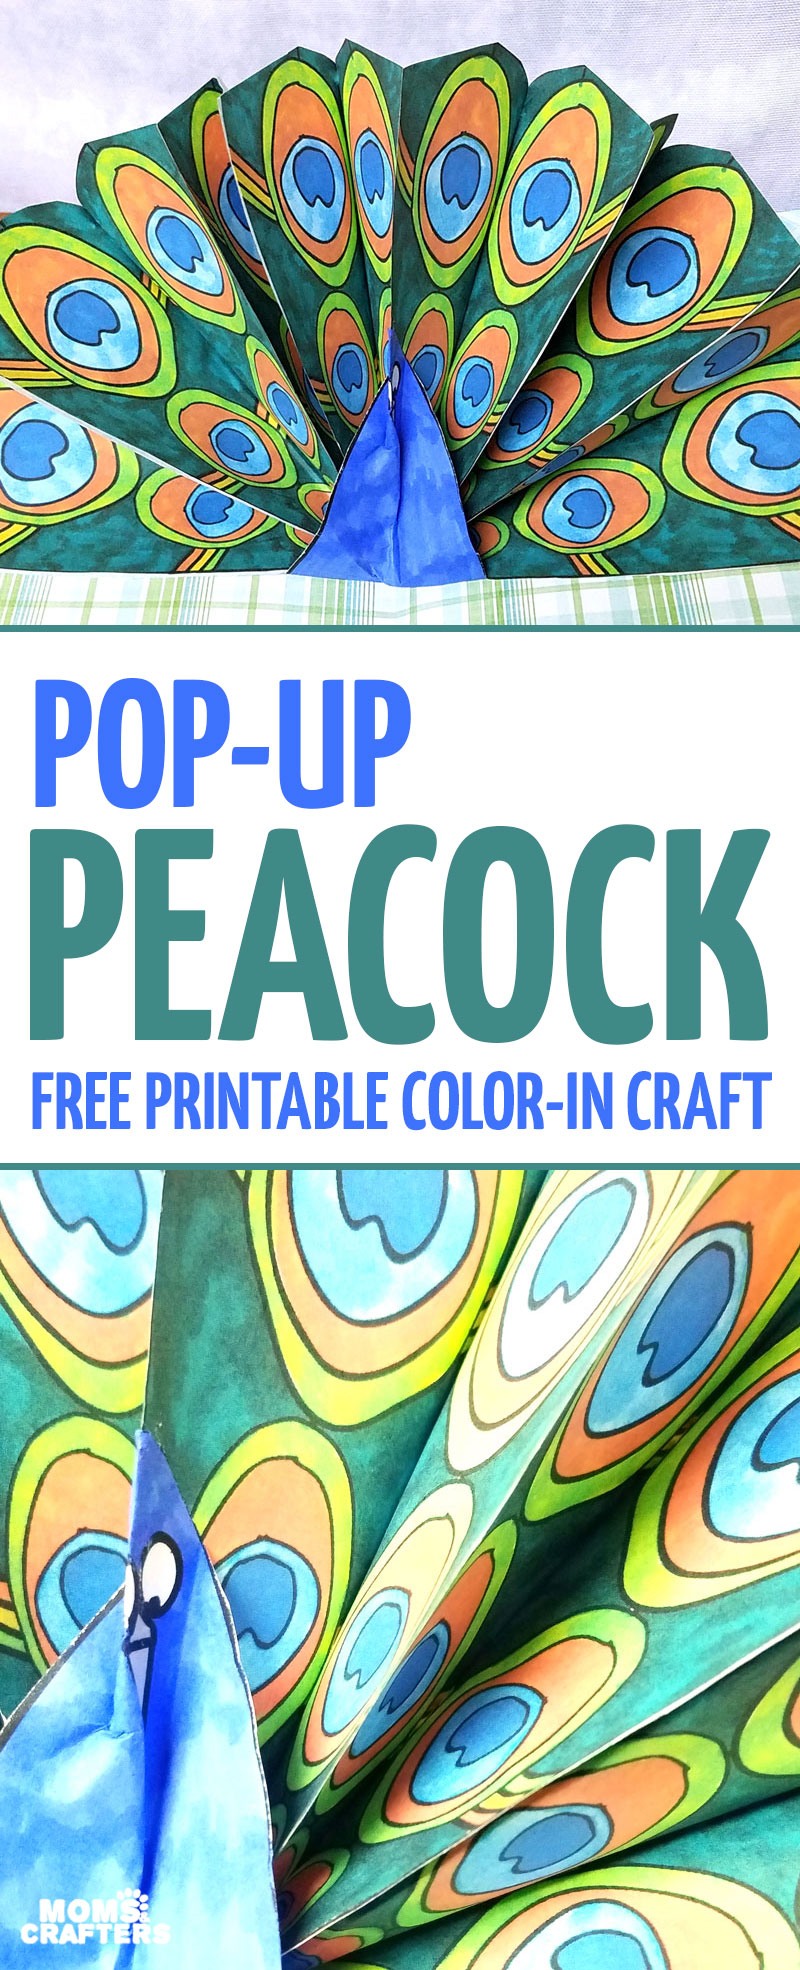 Peacock Craft – Pop Up Paper Peacock With Free Printable Feathers - Free Printable Peacock Pictures